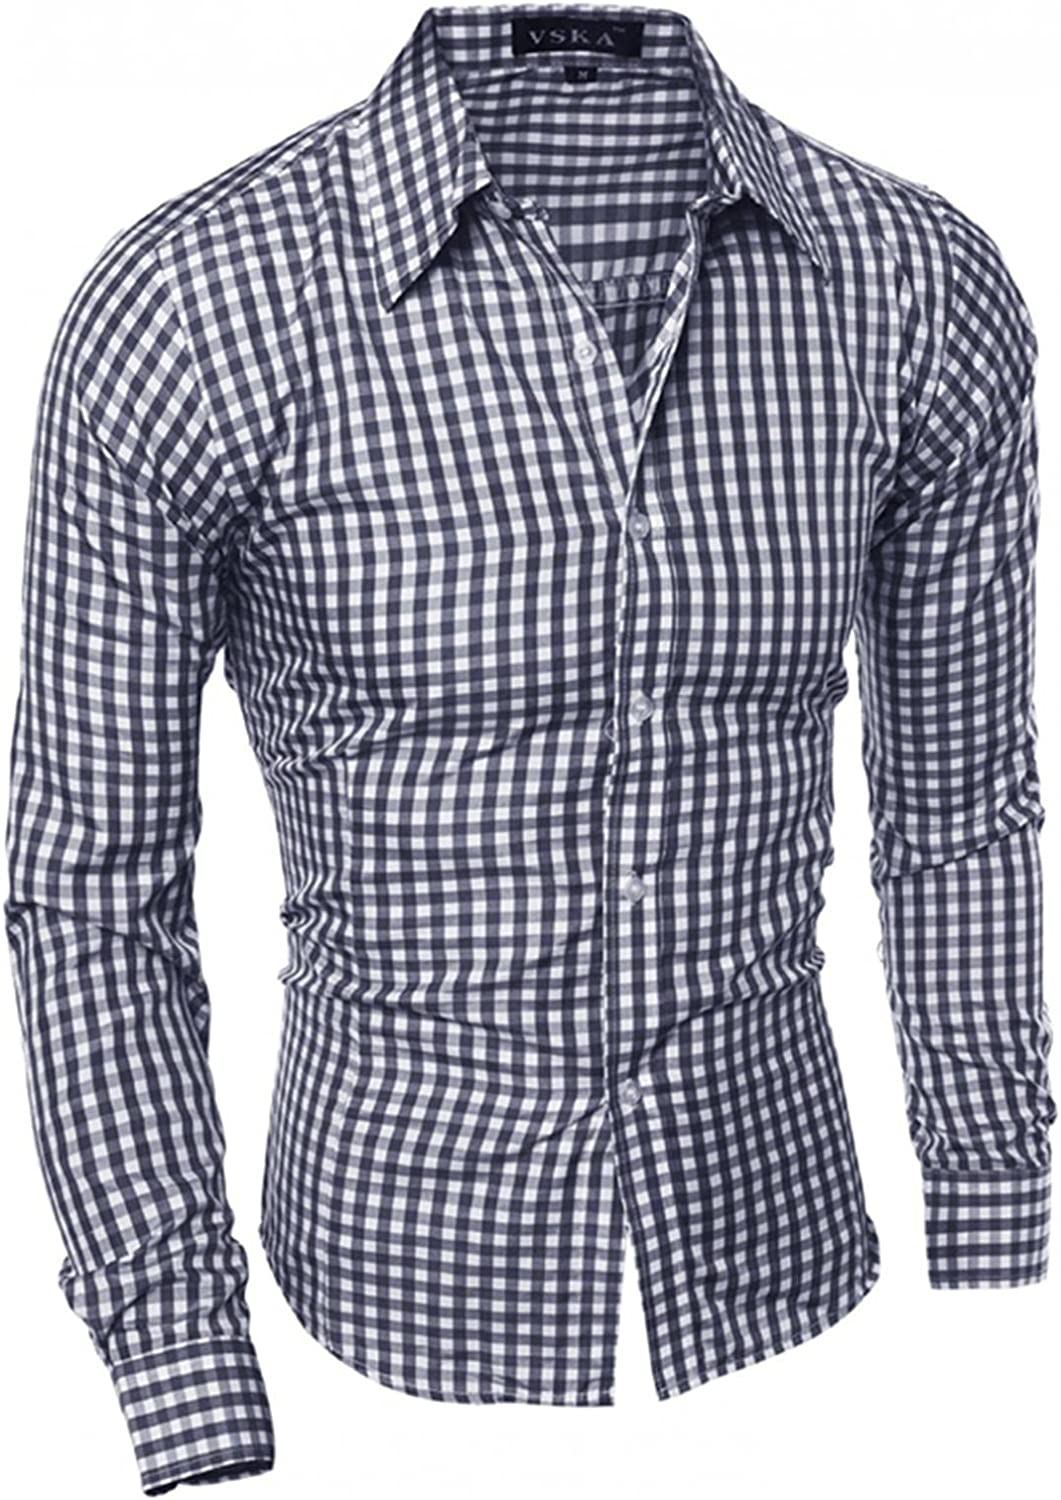 FUNEY Men's Long-Sleeve Regular-fit Casual Poplin Shirt Solid Slim Fit Plaid Casual Business Formal Button Up Shirts